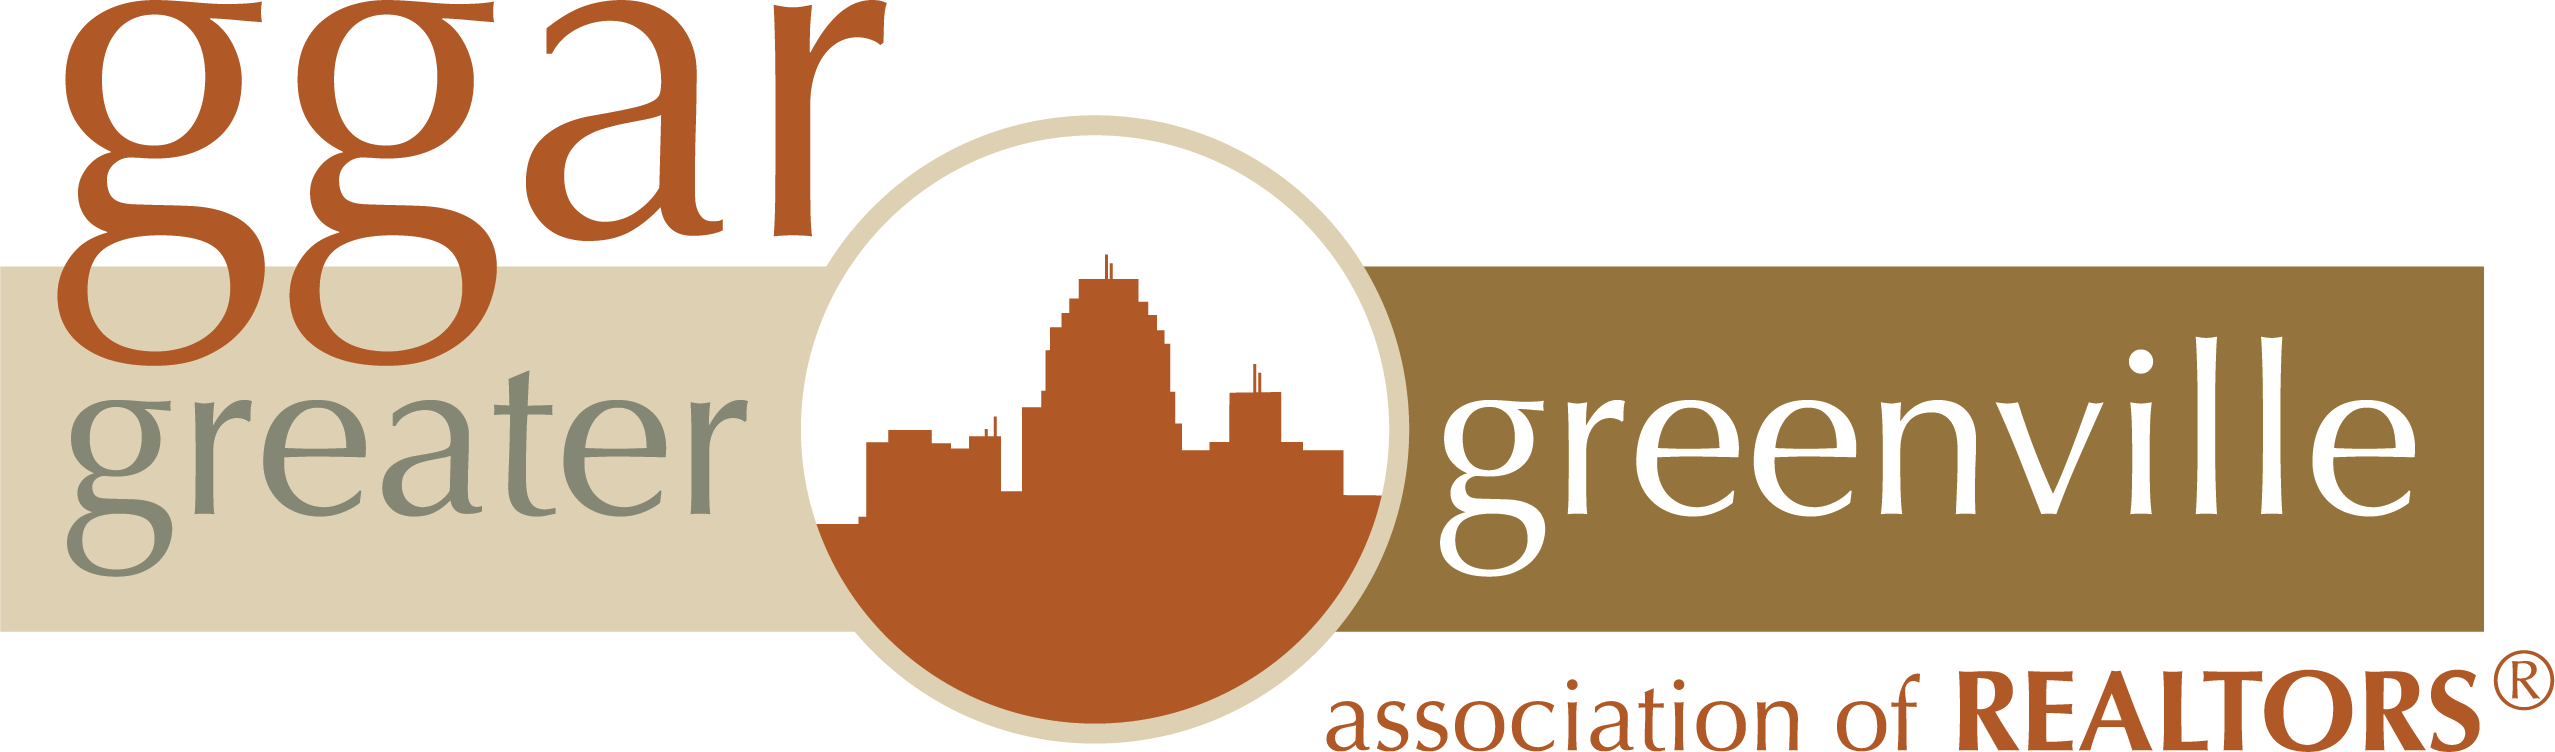 The Greater Greenville Association of REALTORS®